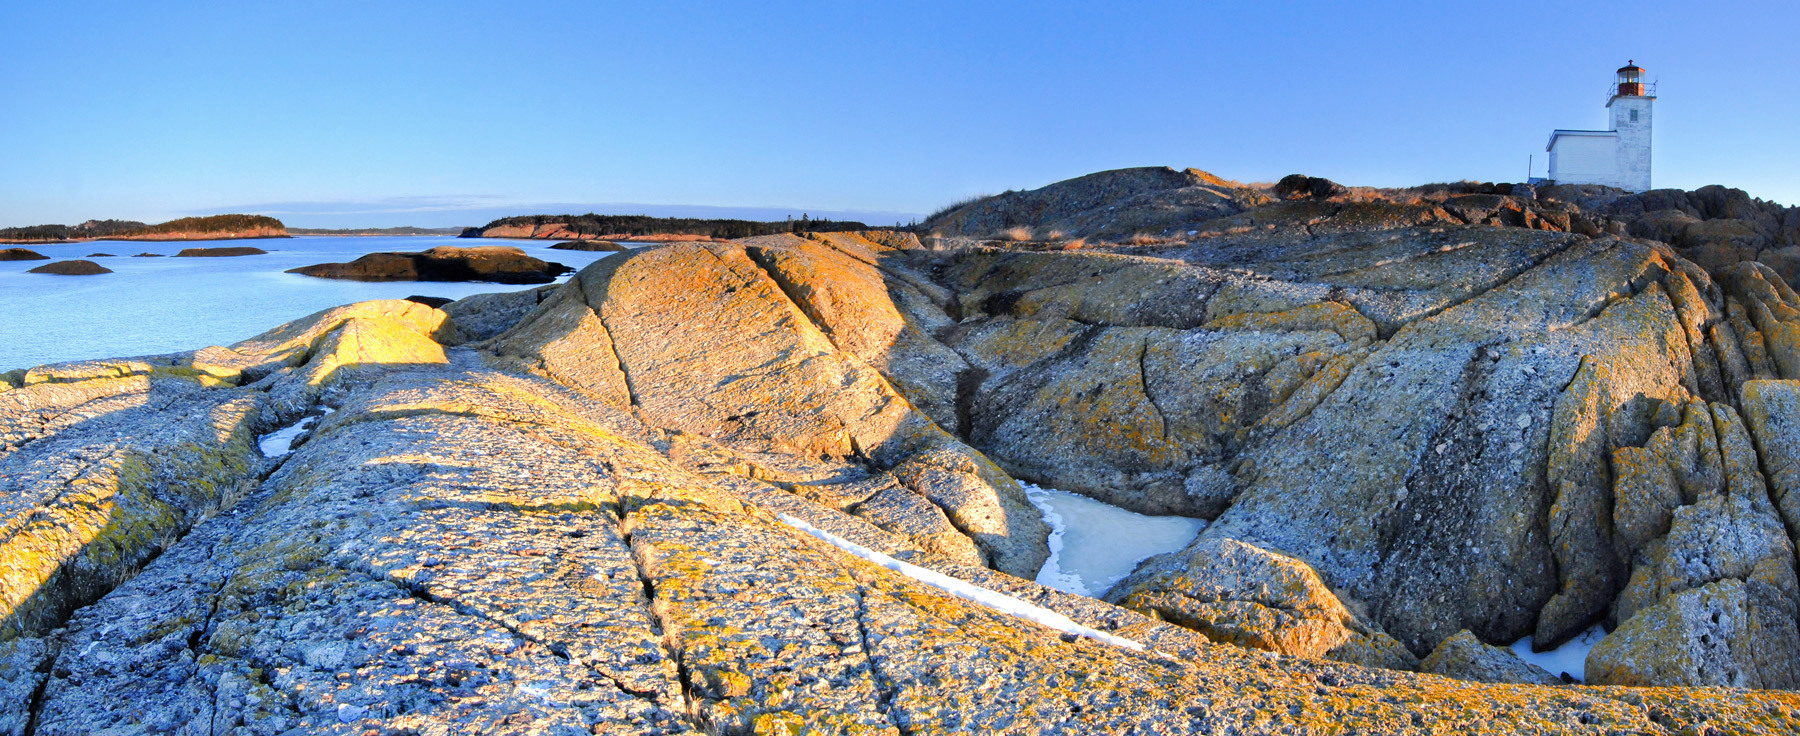 This is a panorama of Pea point light house from its southern ledges.  It was actually quite a warm winter day and I had a great time soaking up the sounds, sights and sun.  The smoothed out bedrock that surround the light show evidence of glacial pavement; areas where the rock is relatively smooth with the exception of many shallow parallel grooves in its surface where the last glacier grinded across it.